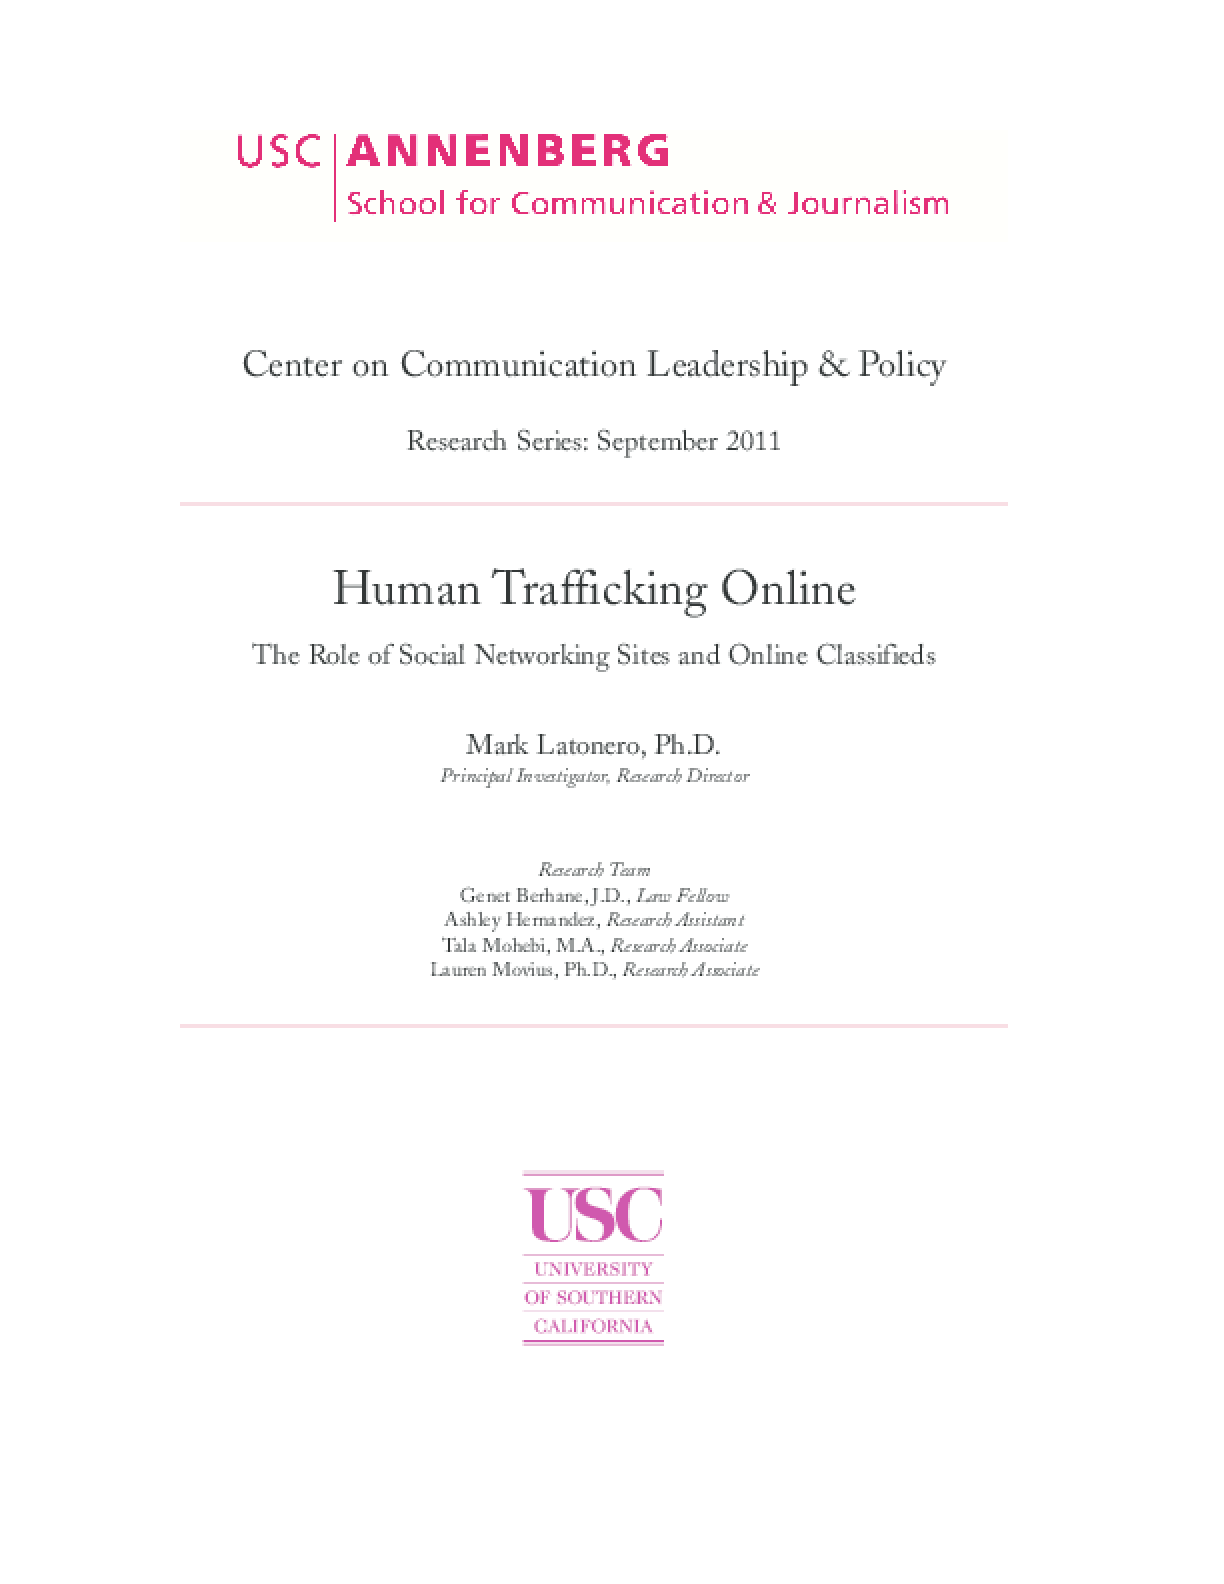 Human Trafficking Online: The Role of Social Media and Online Classifieds